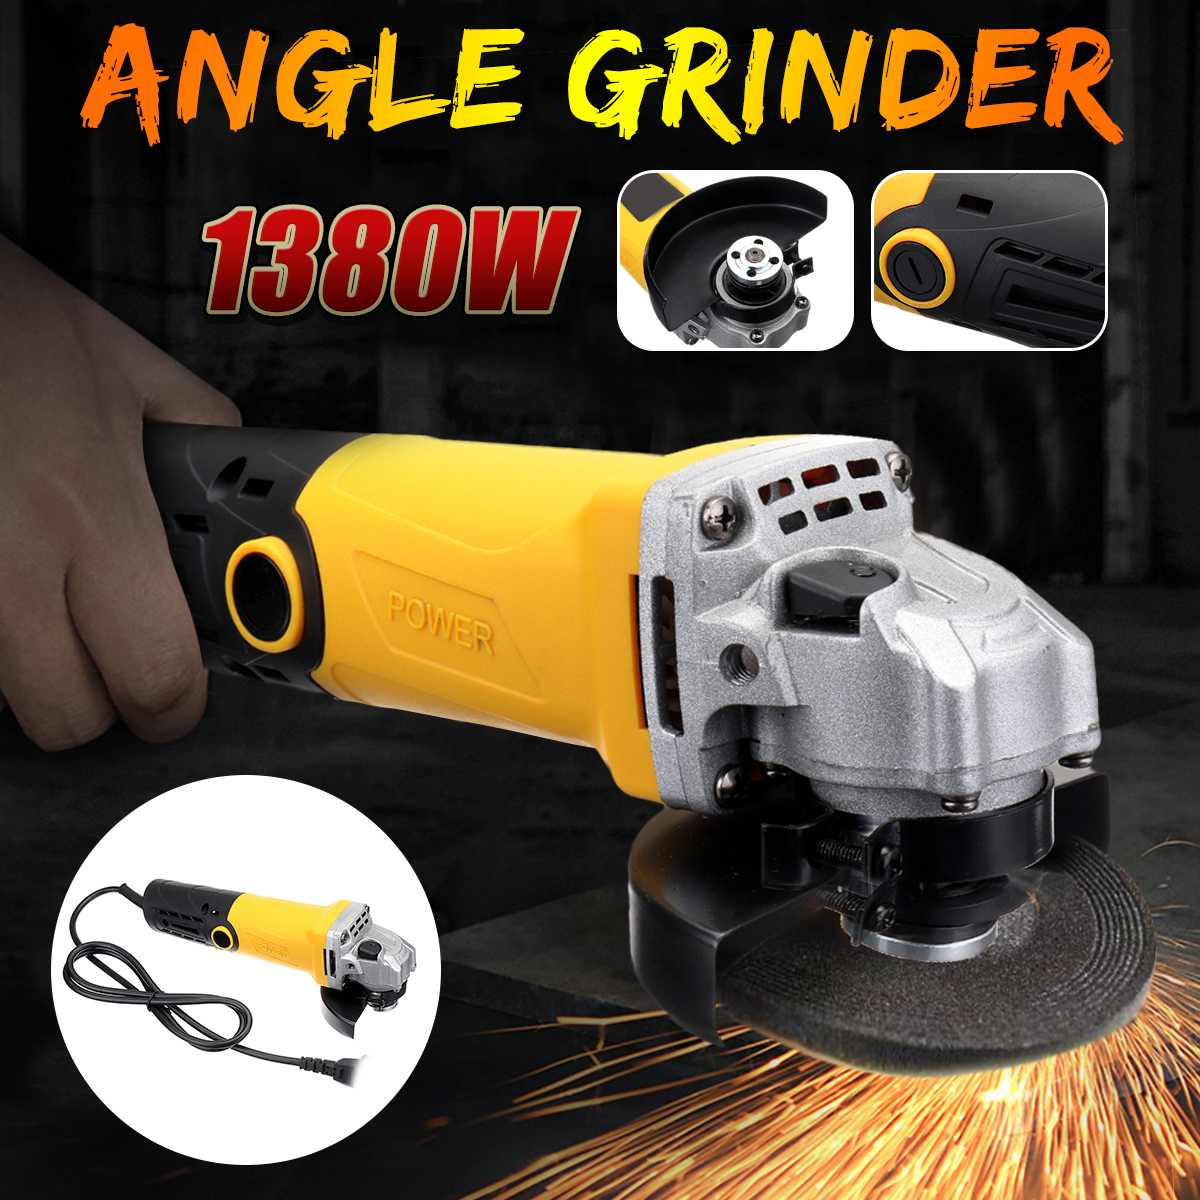 220V/50Hz 1380W 11000r/min Portable Electric Angle Grinder Muti-Function Household Polish Machine220V/50Hz 1380W 11000r/min Portable Electric Angle Grinder Muti-Function Household Polish Machine